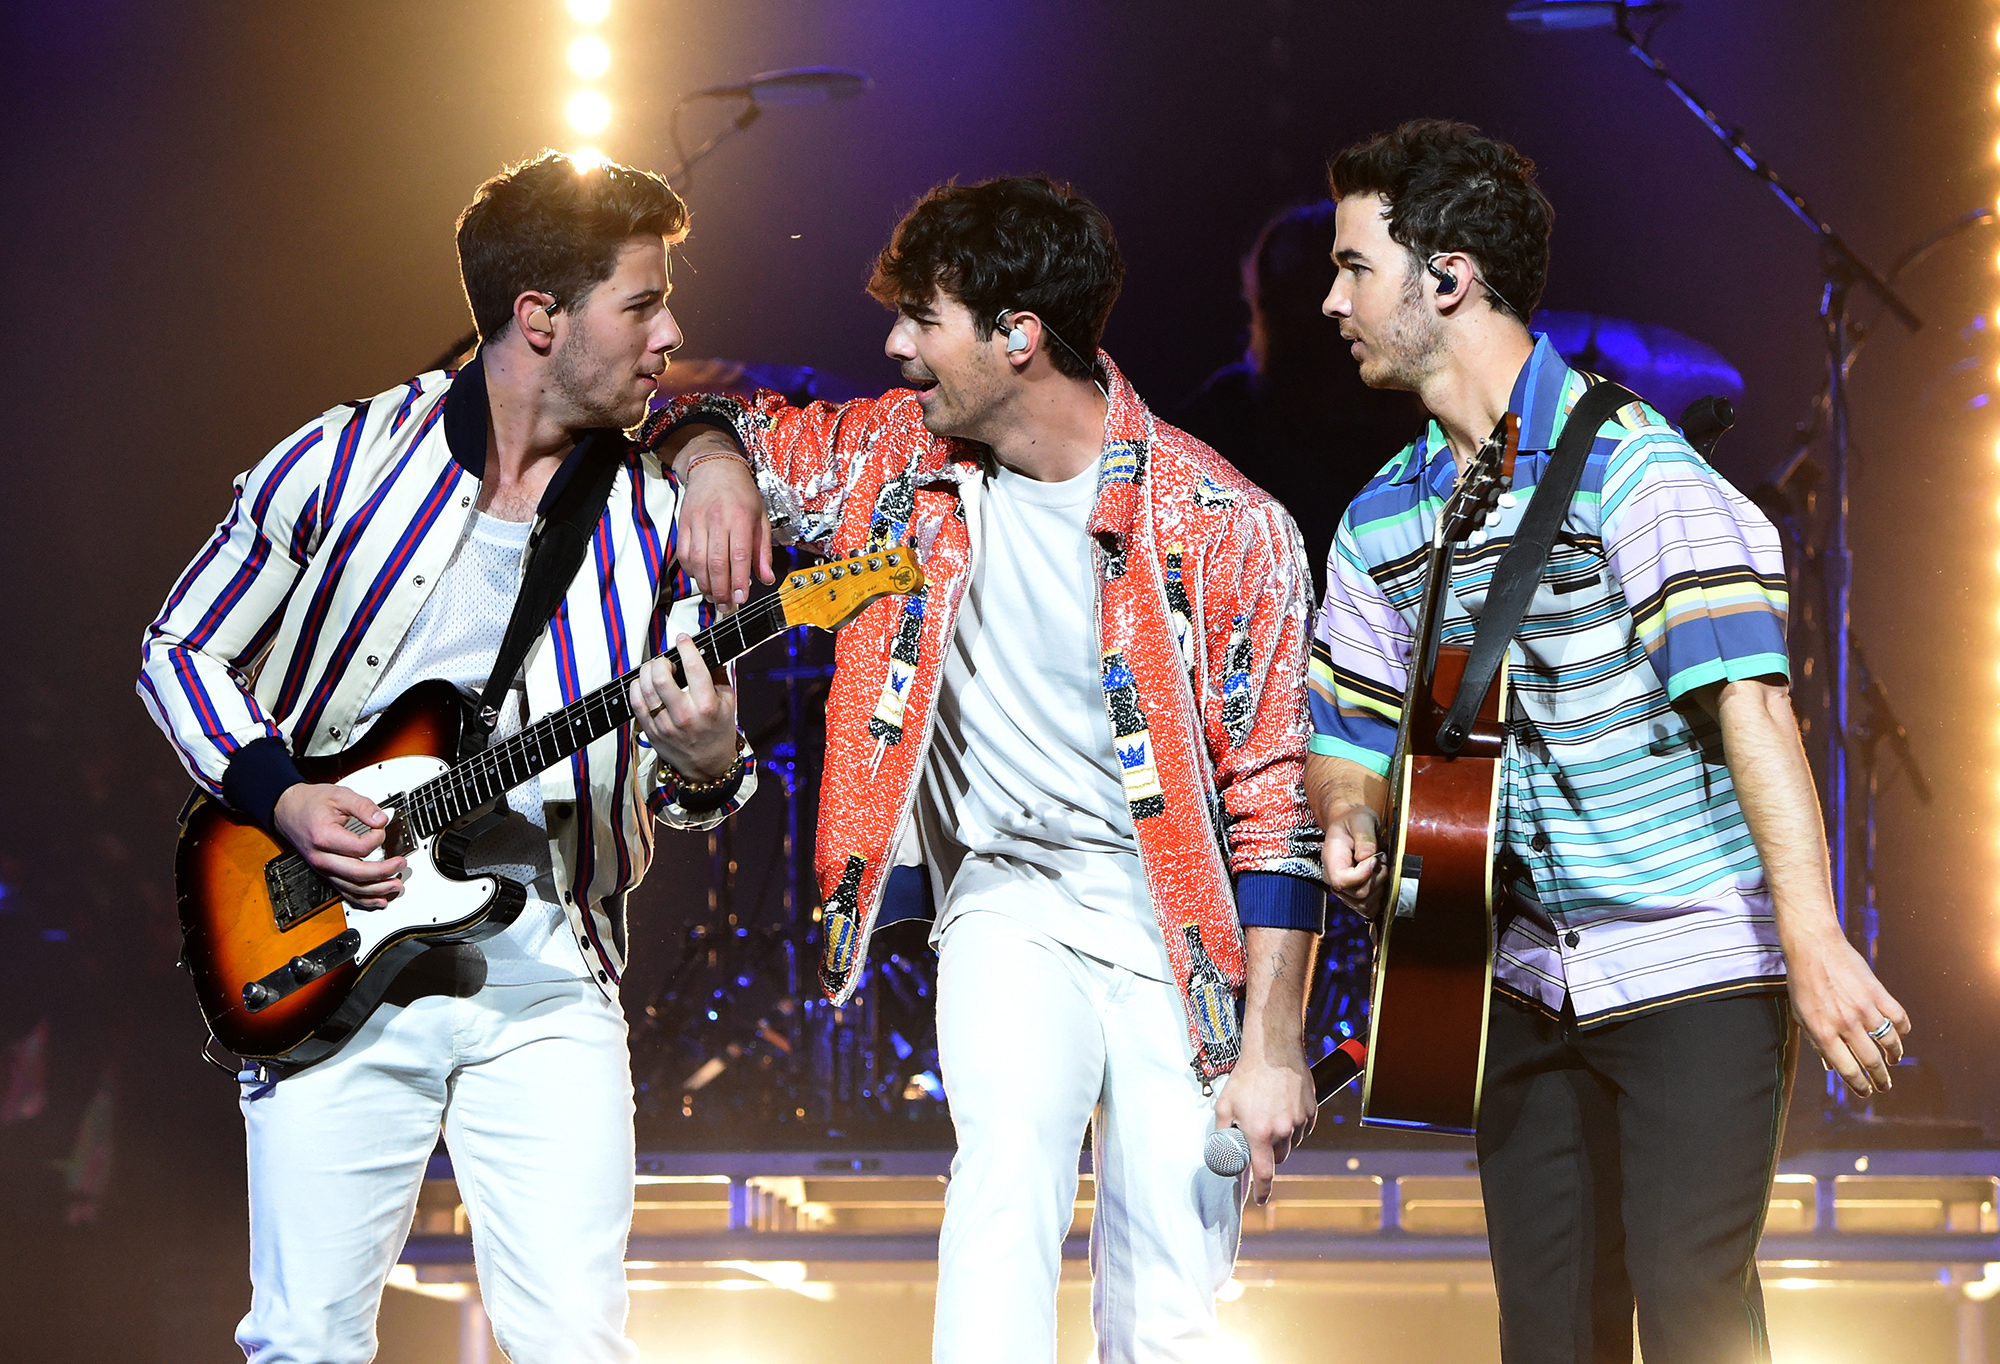 """Celebrity Siblings - Nick , Joe and Kevin shot to fame together as pop group the Jonas Brothers in 2005 thanks to their heavy rotation on the Disney channel. They reunited in February 2019 after taking a six-year hiatus, and debuted a brand new single called """"Sucker,"""" the video for which featured their respective significant others — Priyanka Chopra Jonas , Sophie Turner and Danielle Jonas ."""